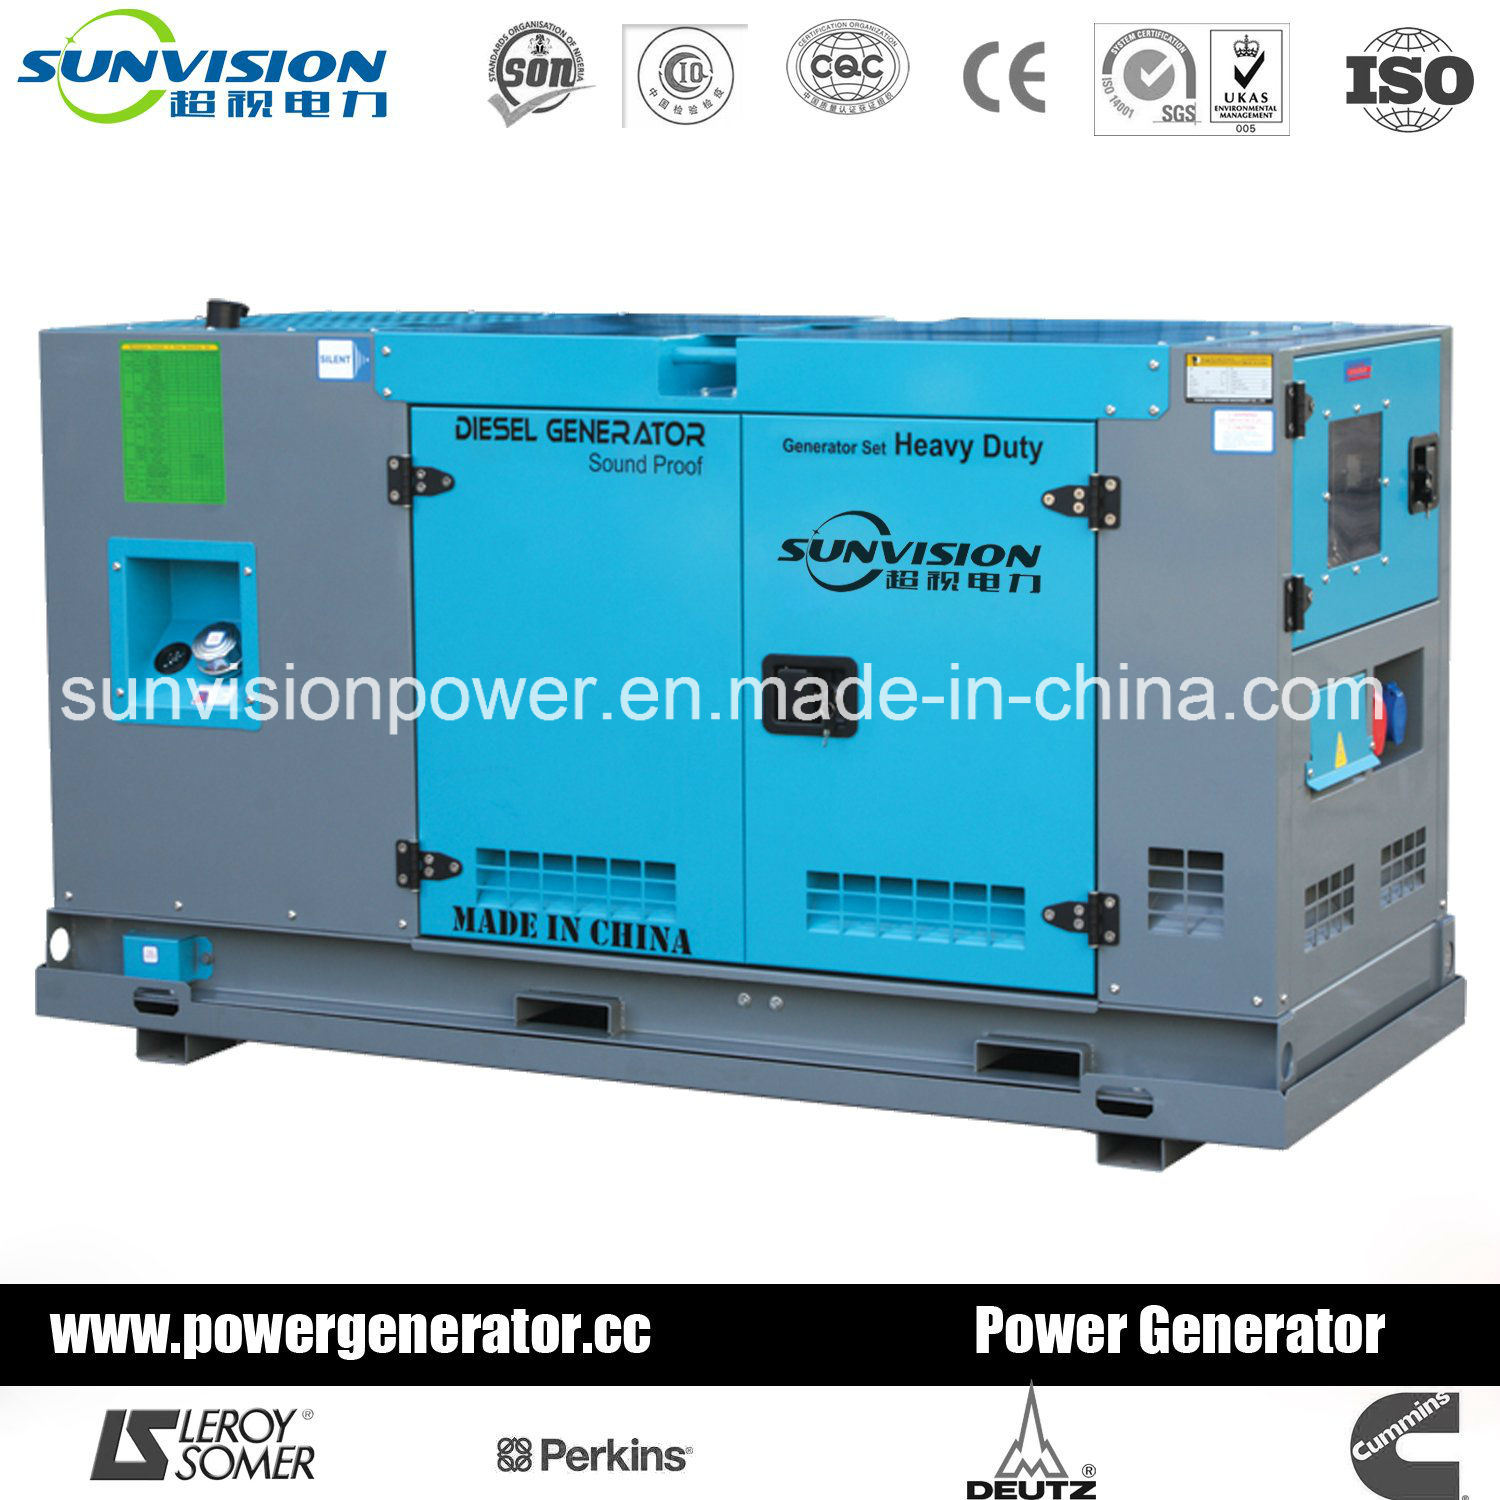 Mitsubishi Generator Sunvision Digital Technology Co Limited